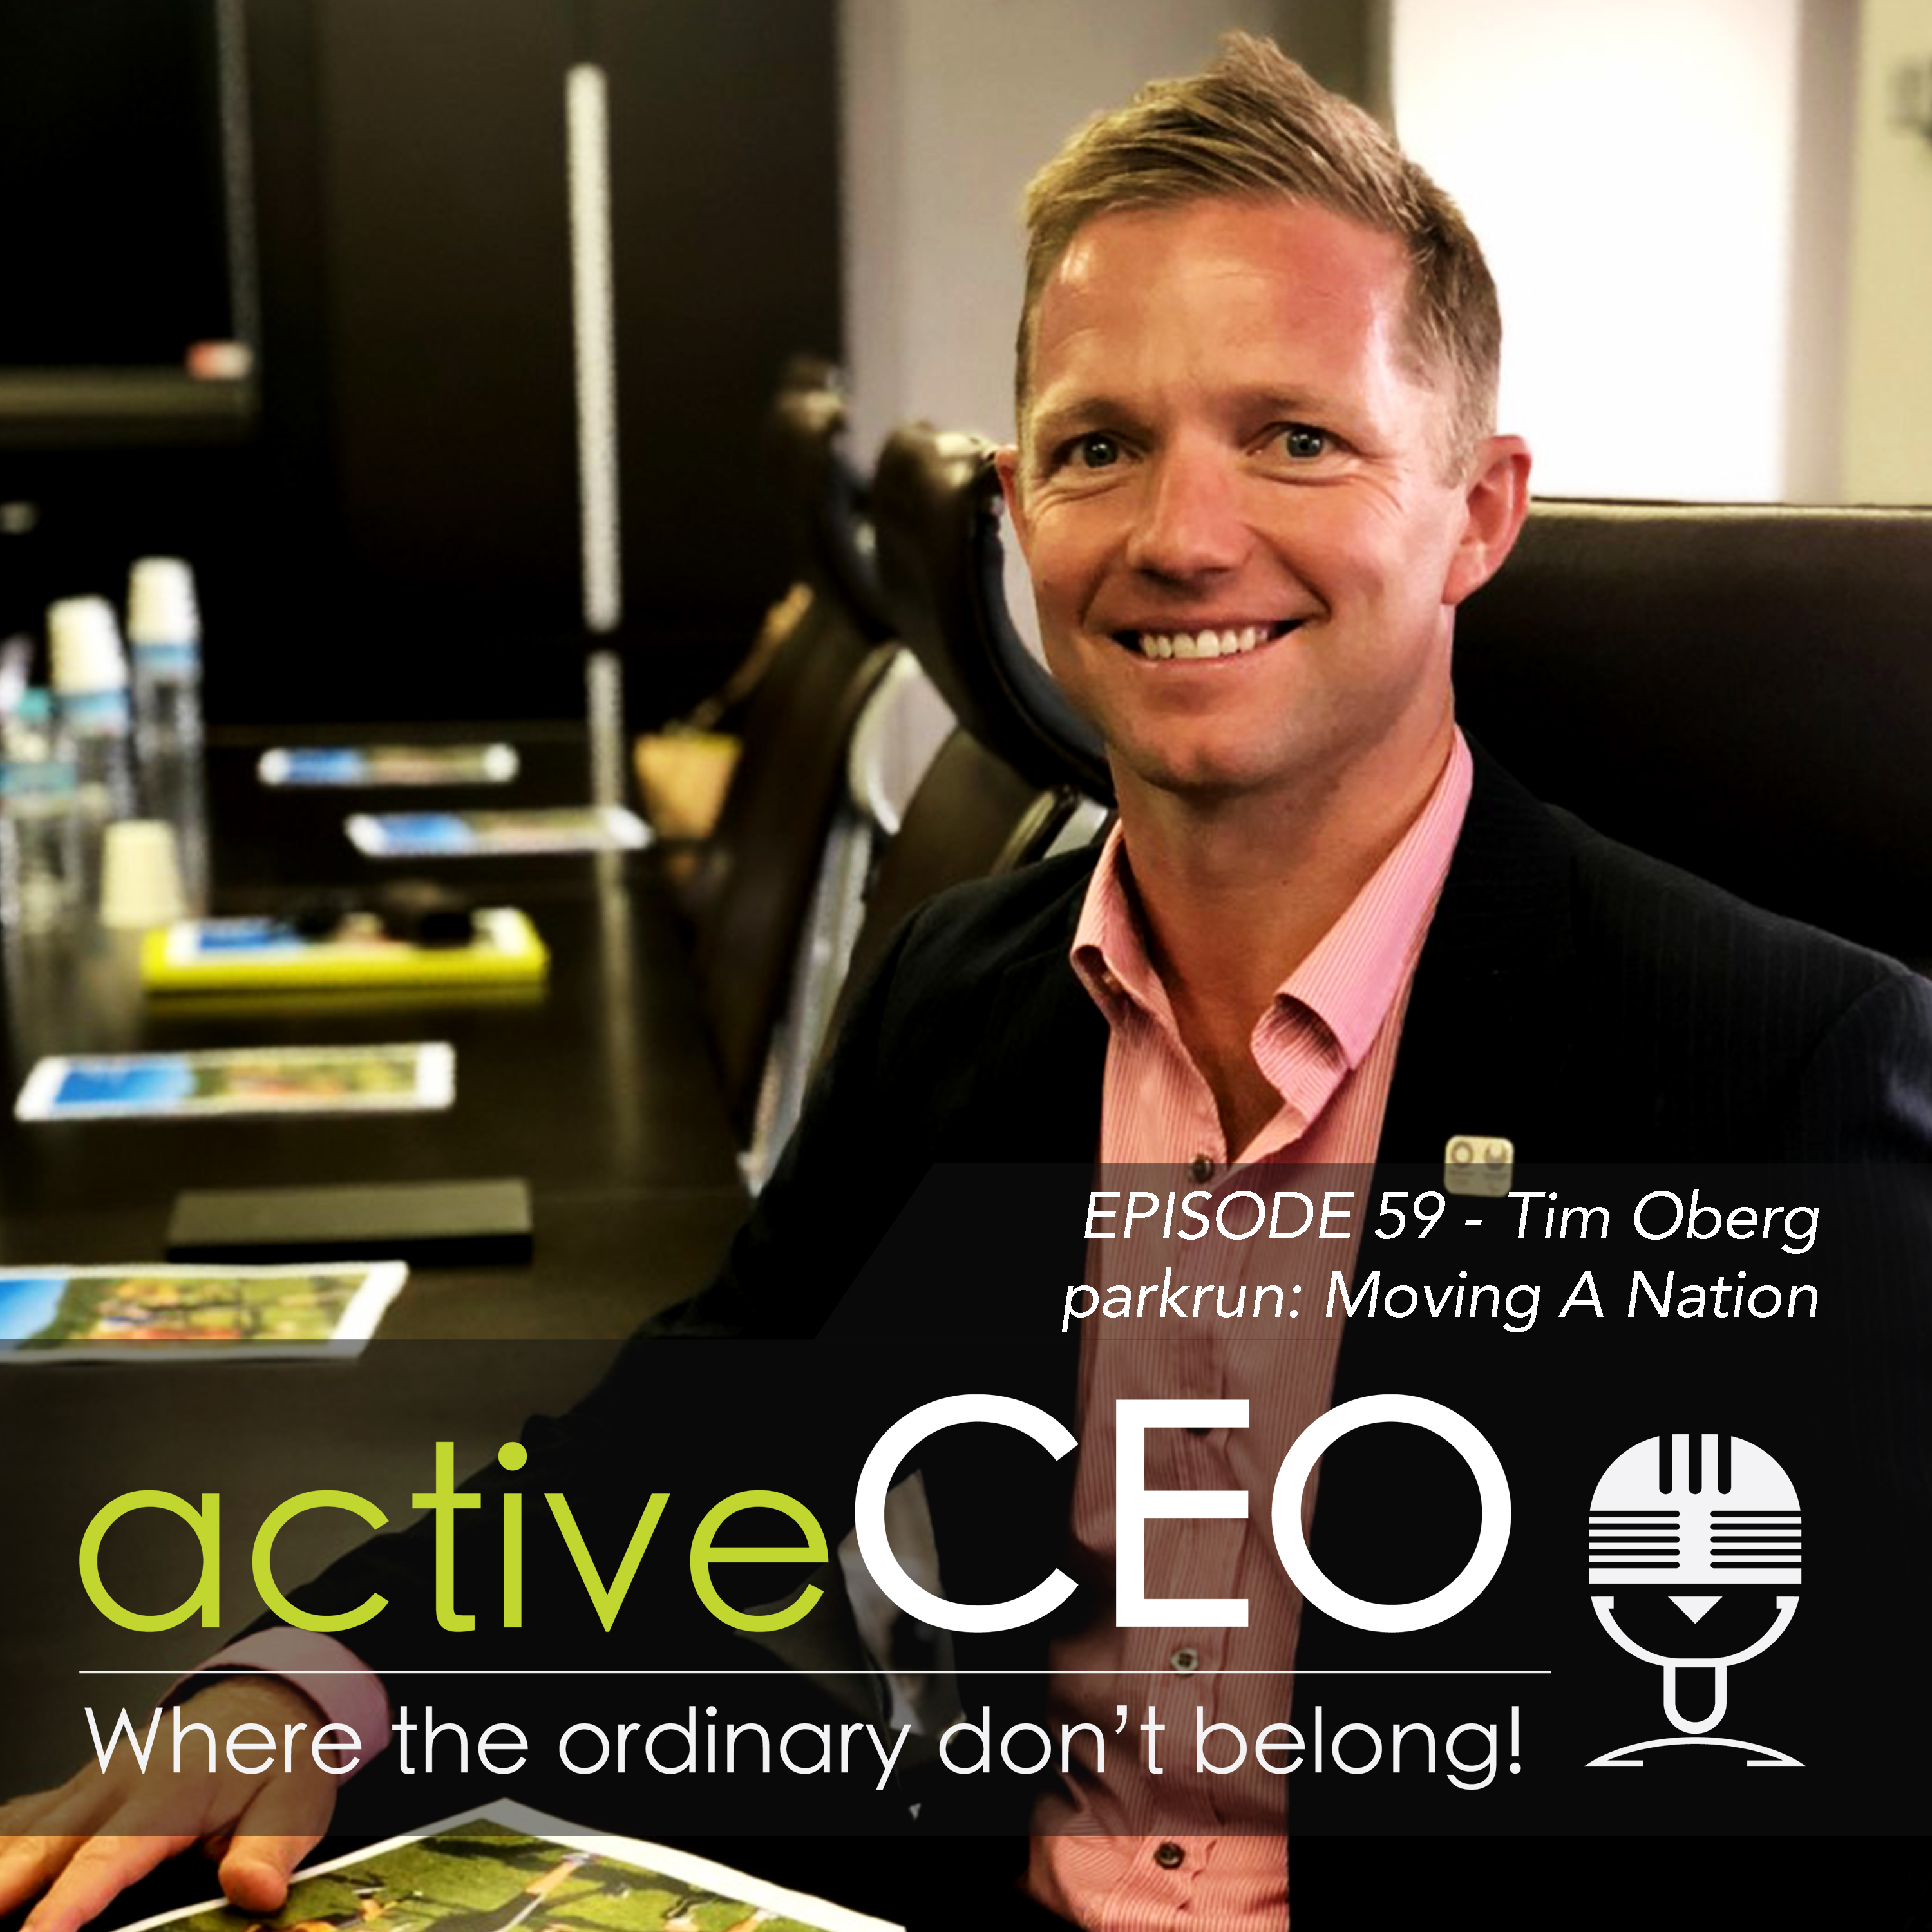 active CEO Podcast 59 Tim Oberg parkrun